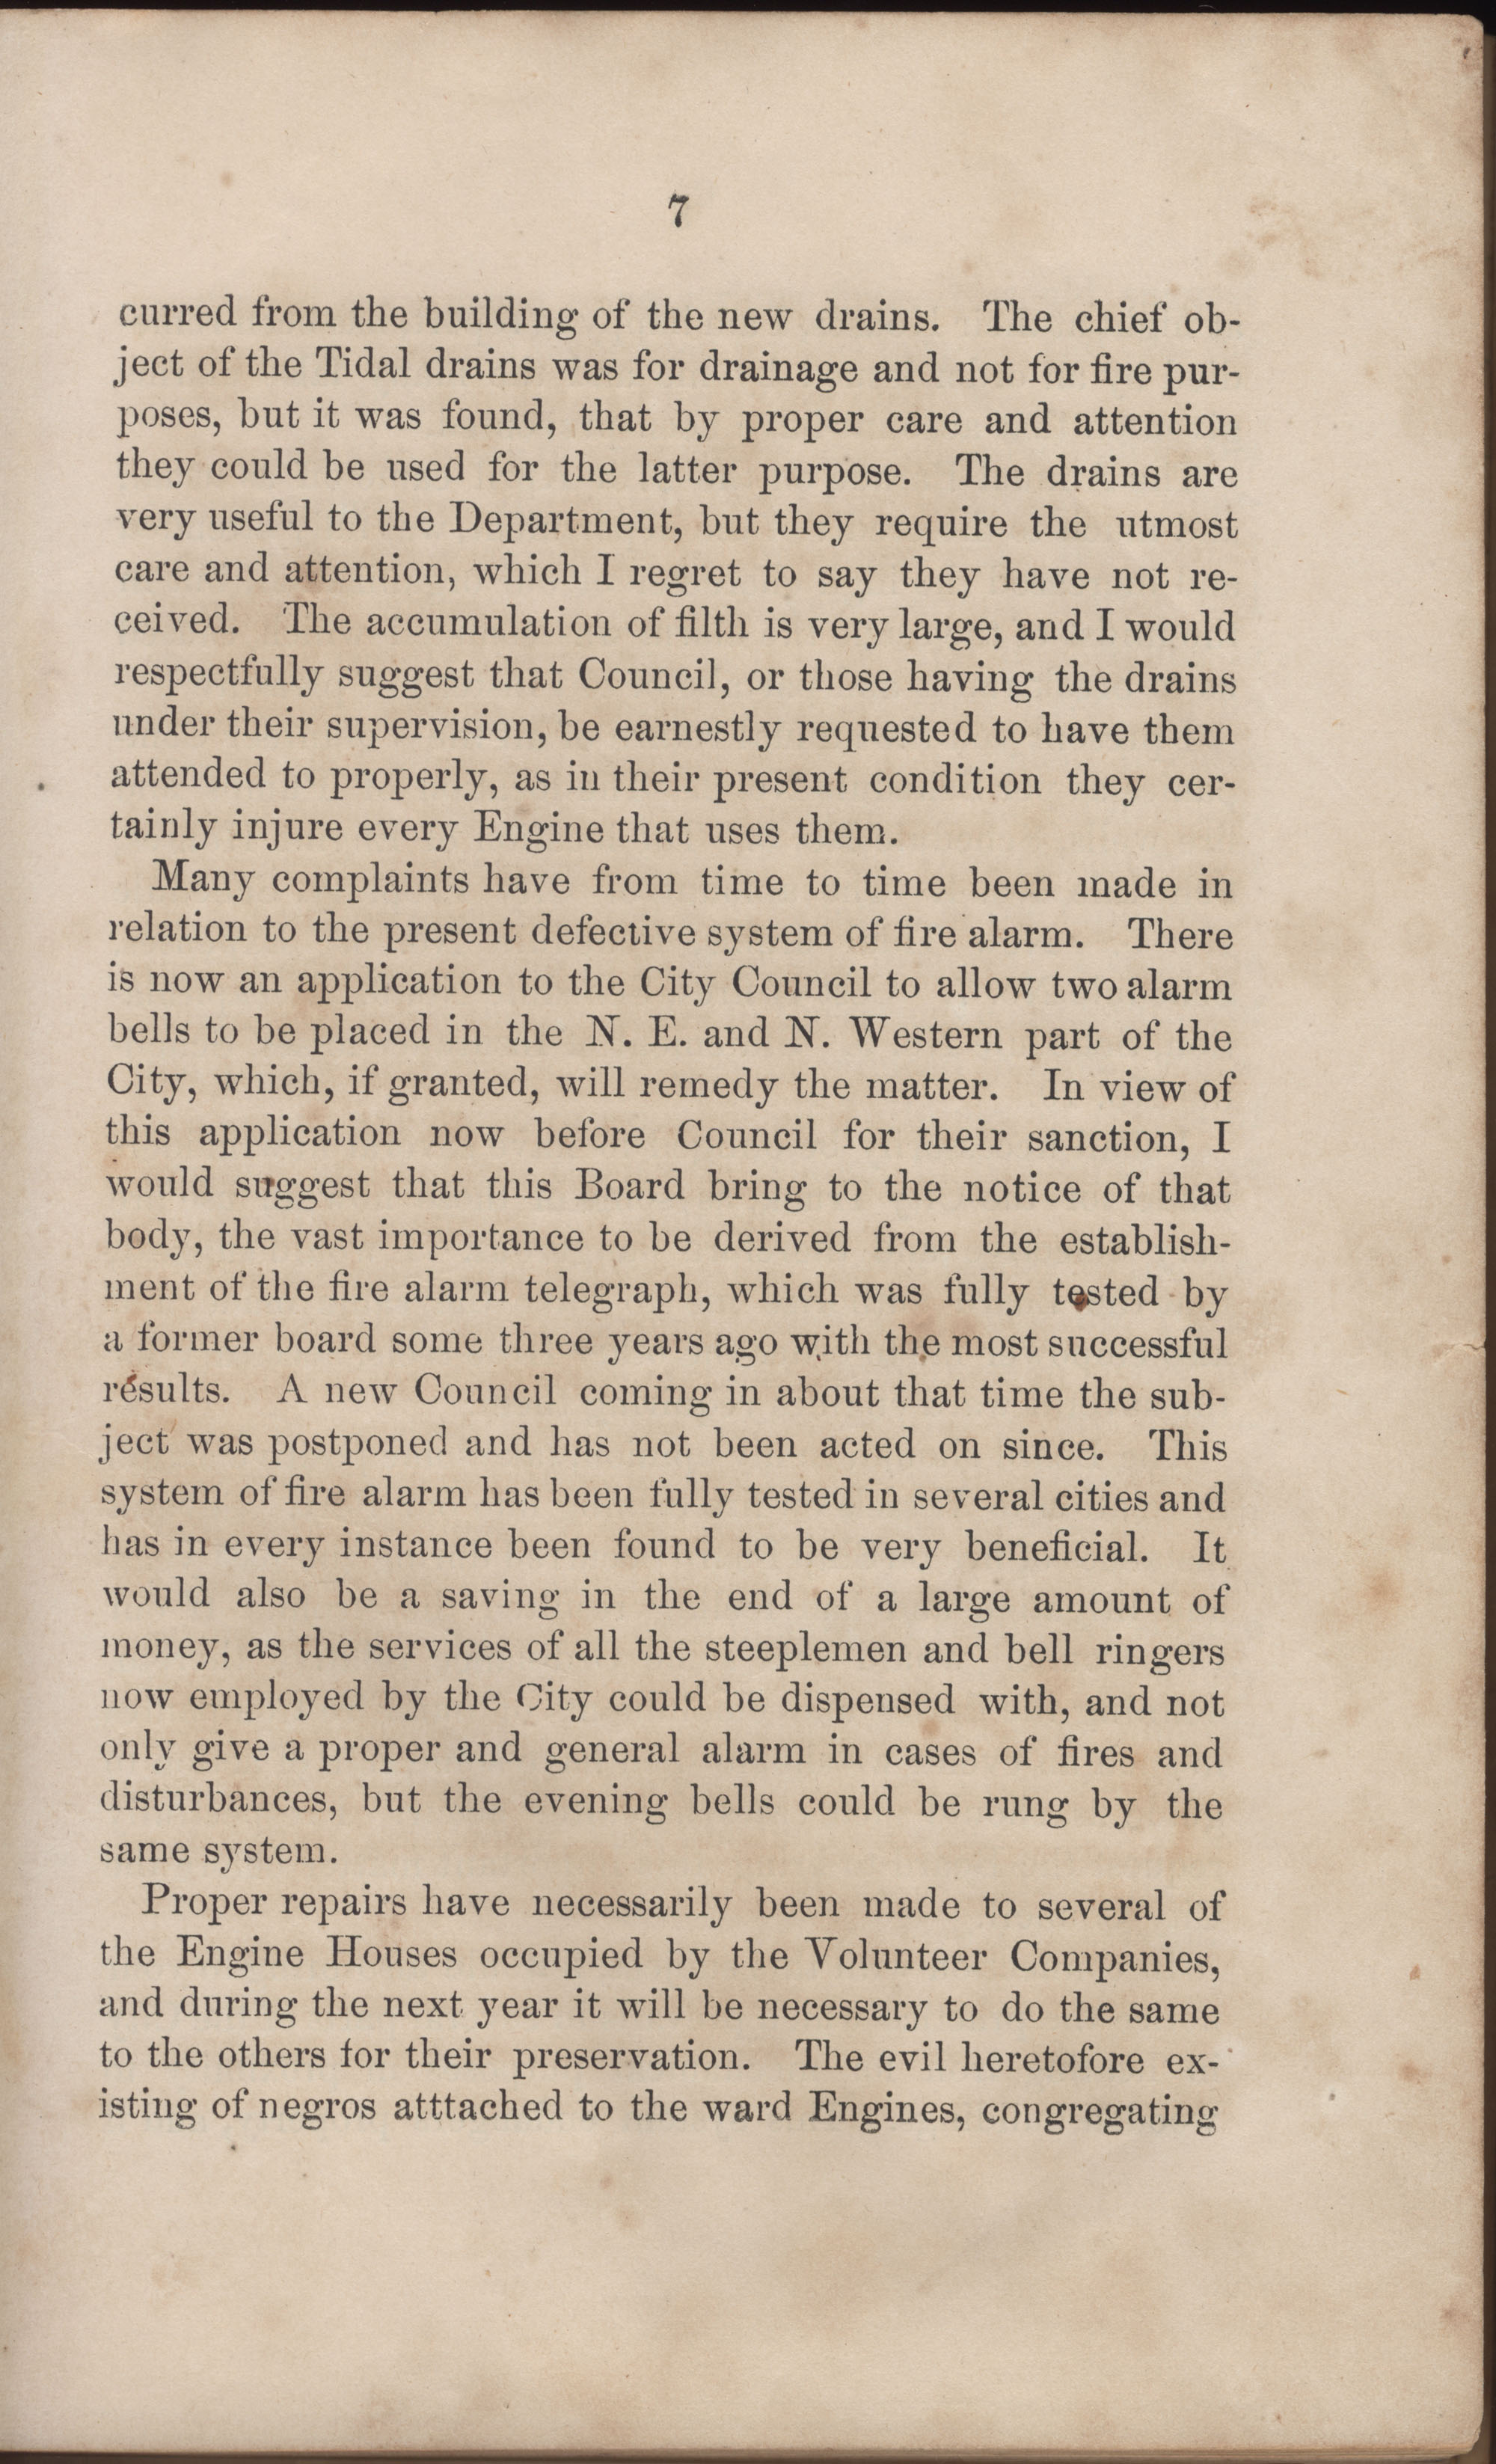 Annual Report of the Chief of the Fire Department of the City of Charleston, page 33